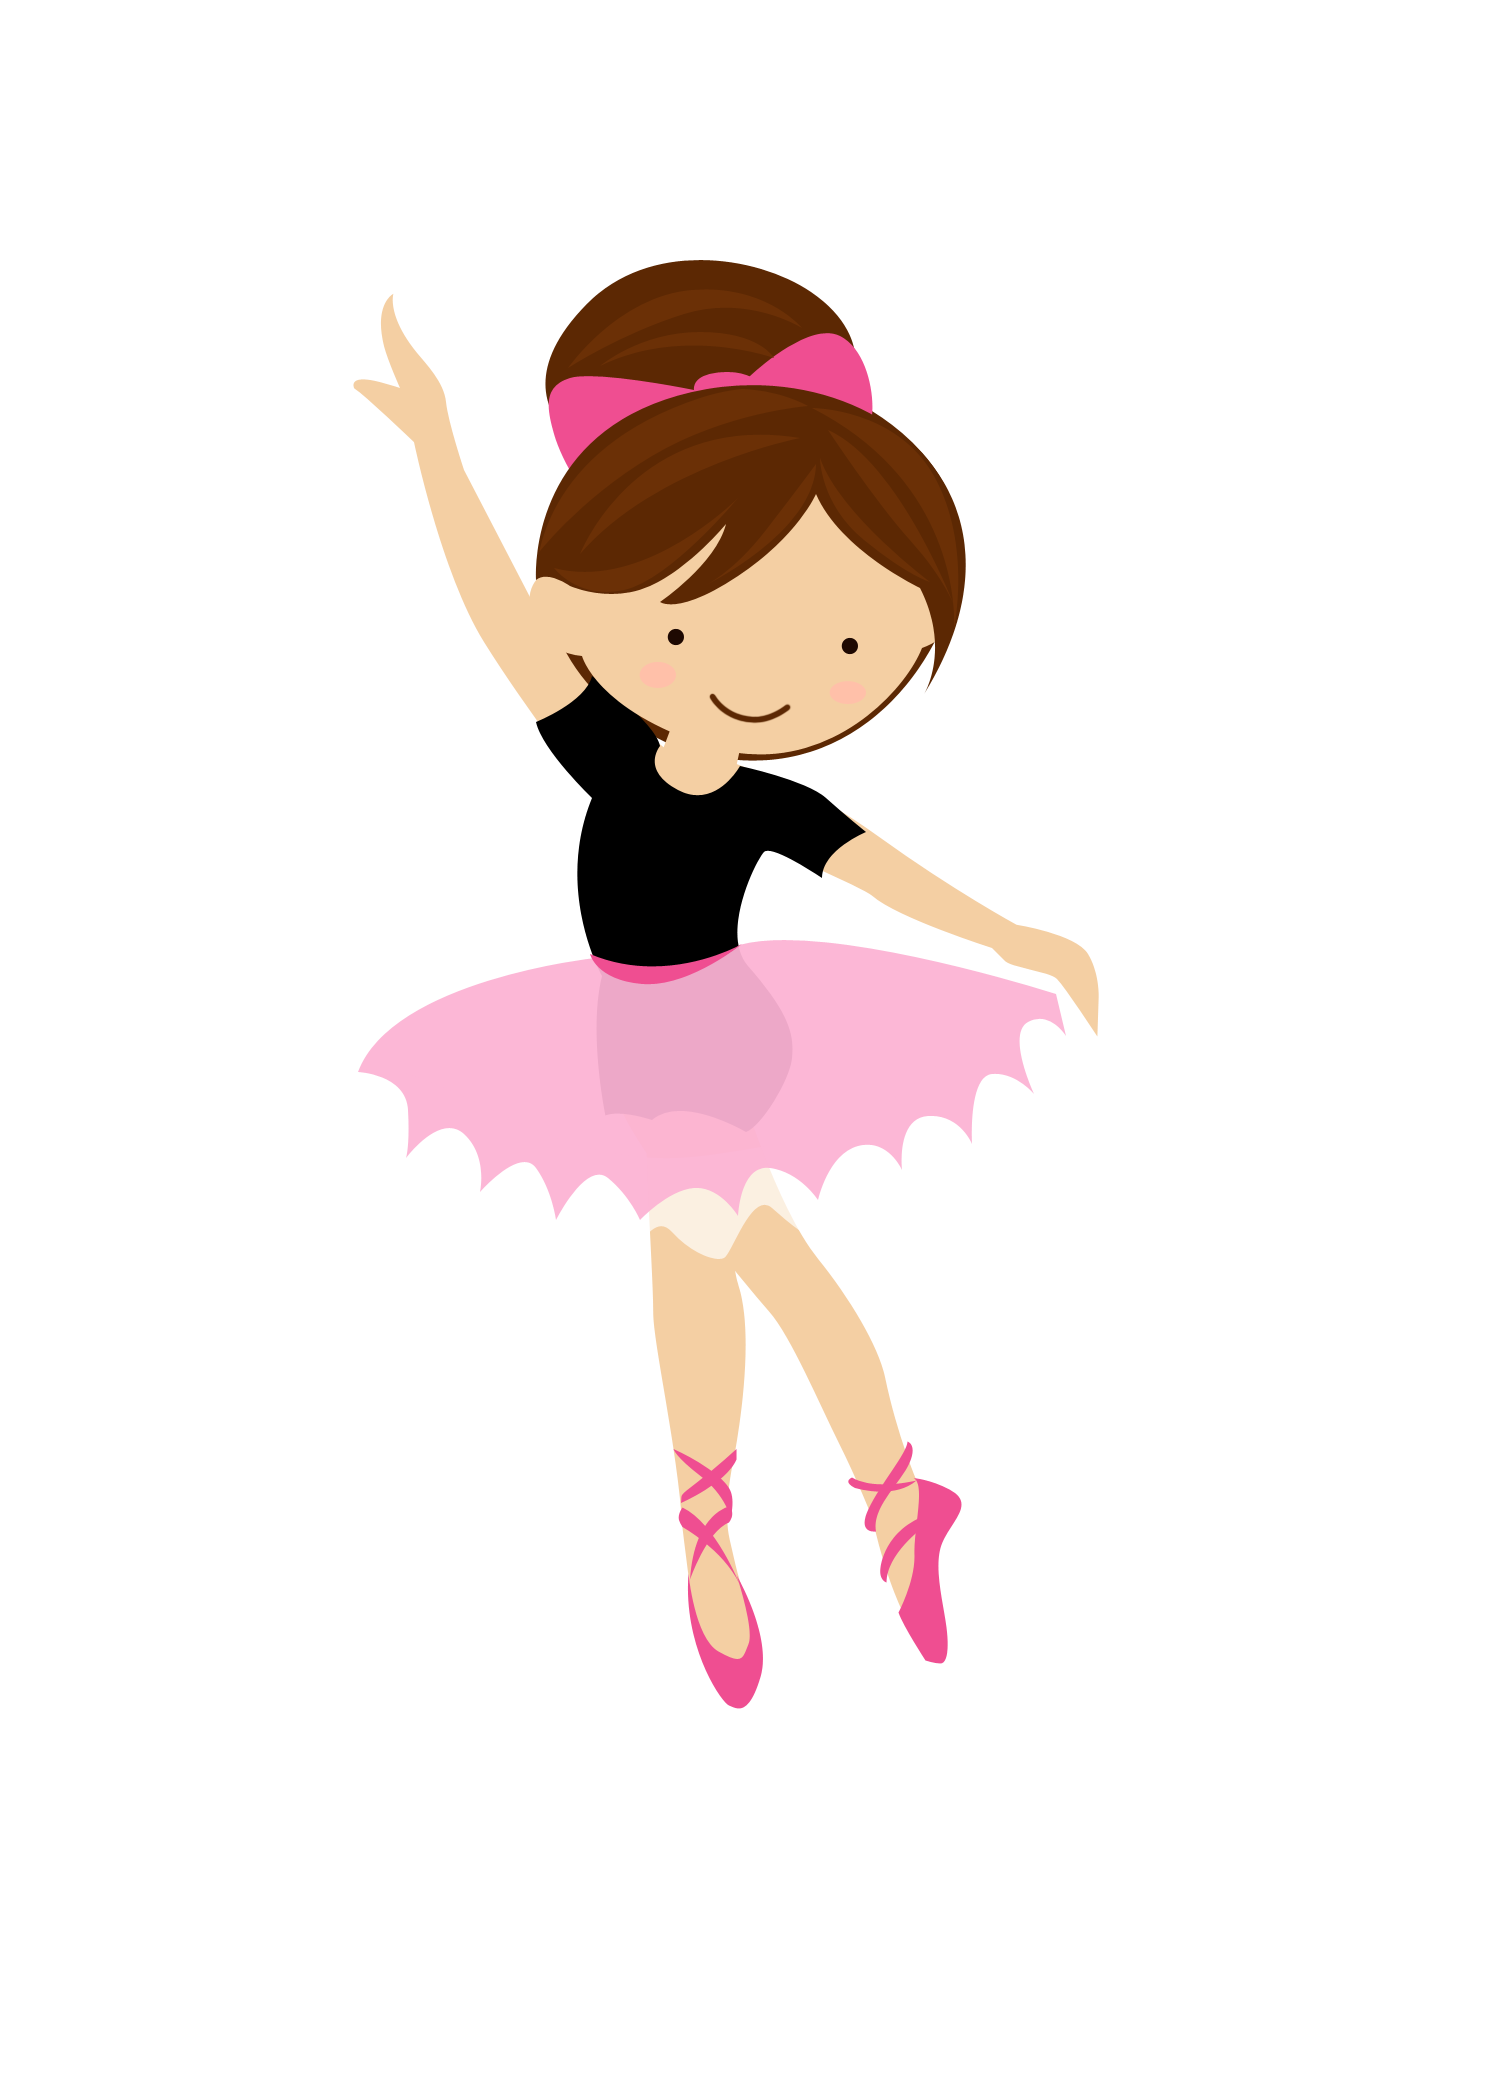 image royalty free download Ac db e b. Ballet clipart bunny.